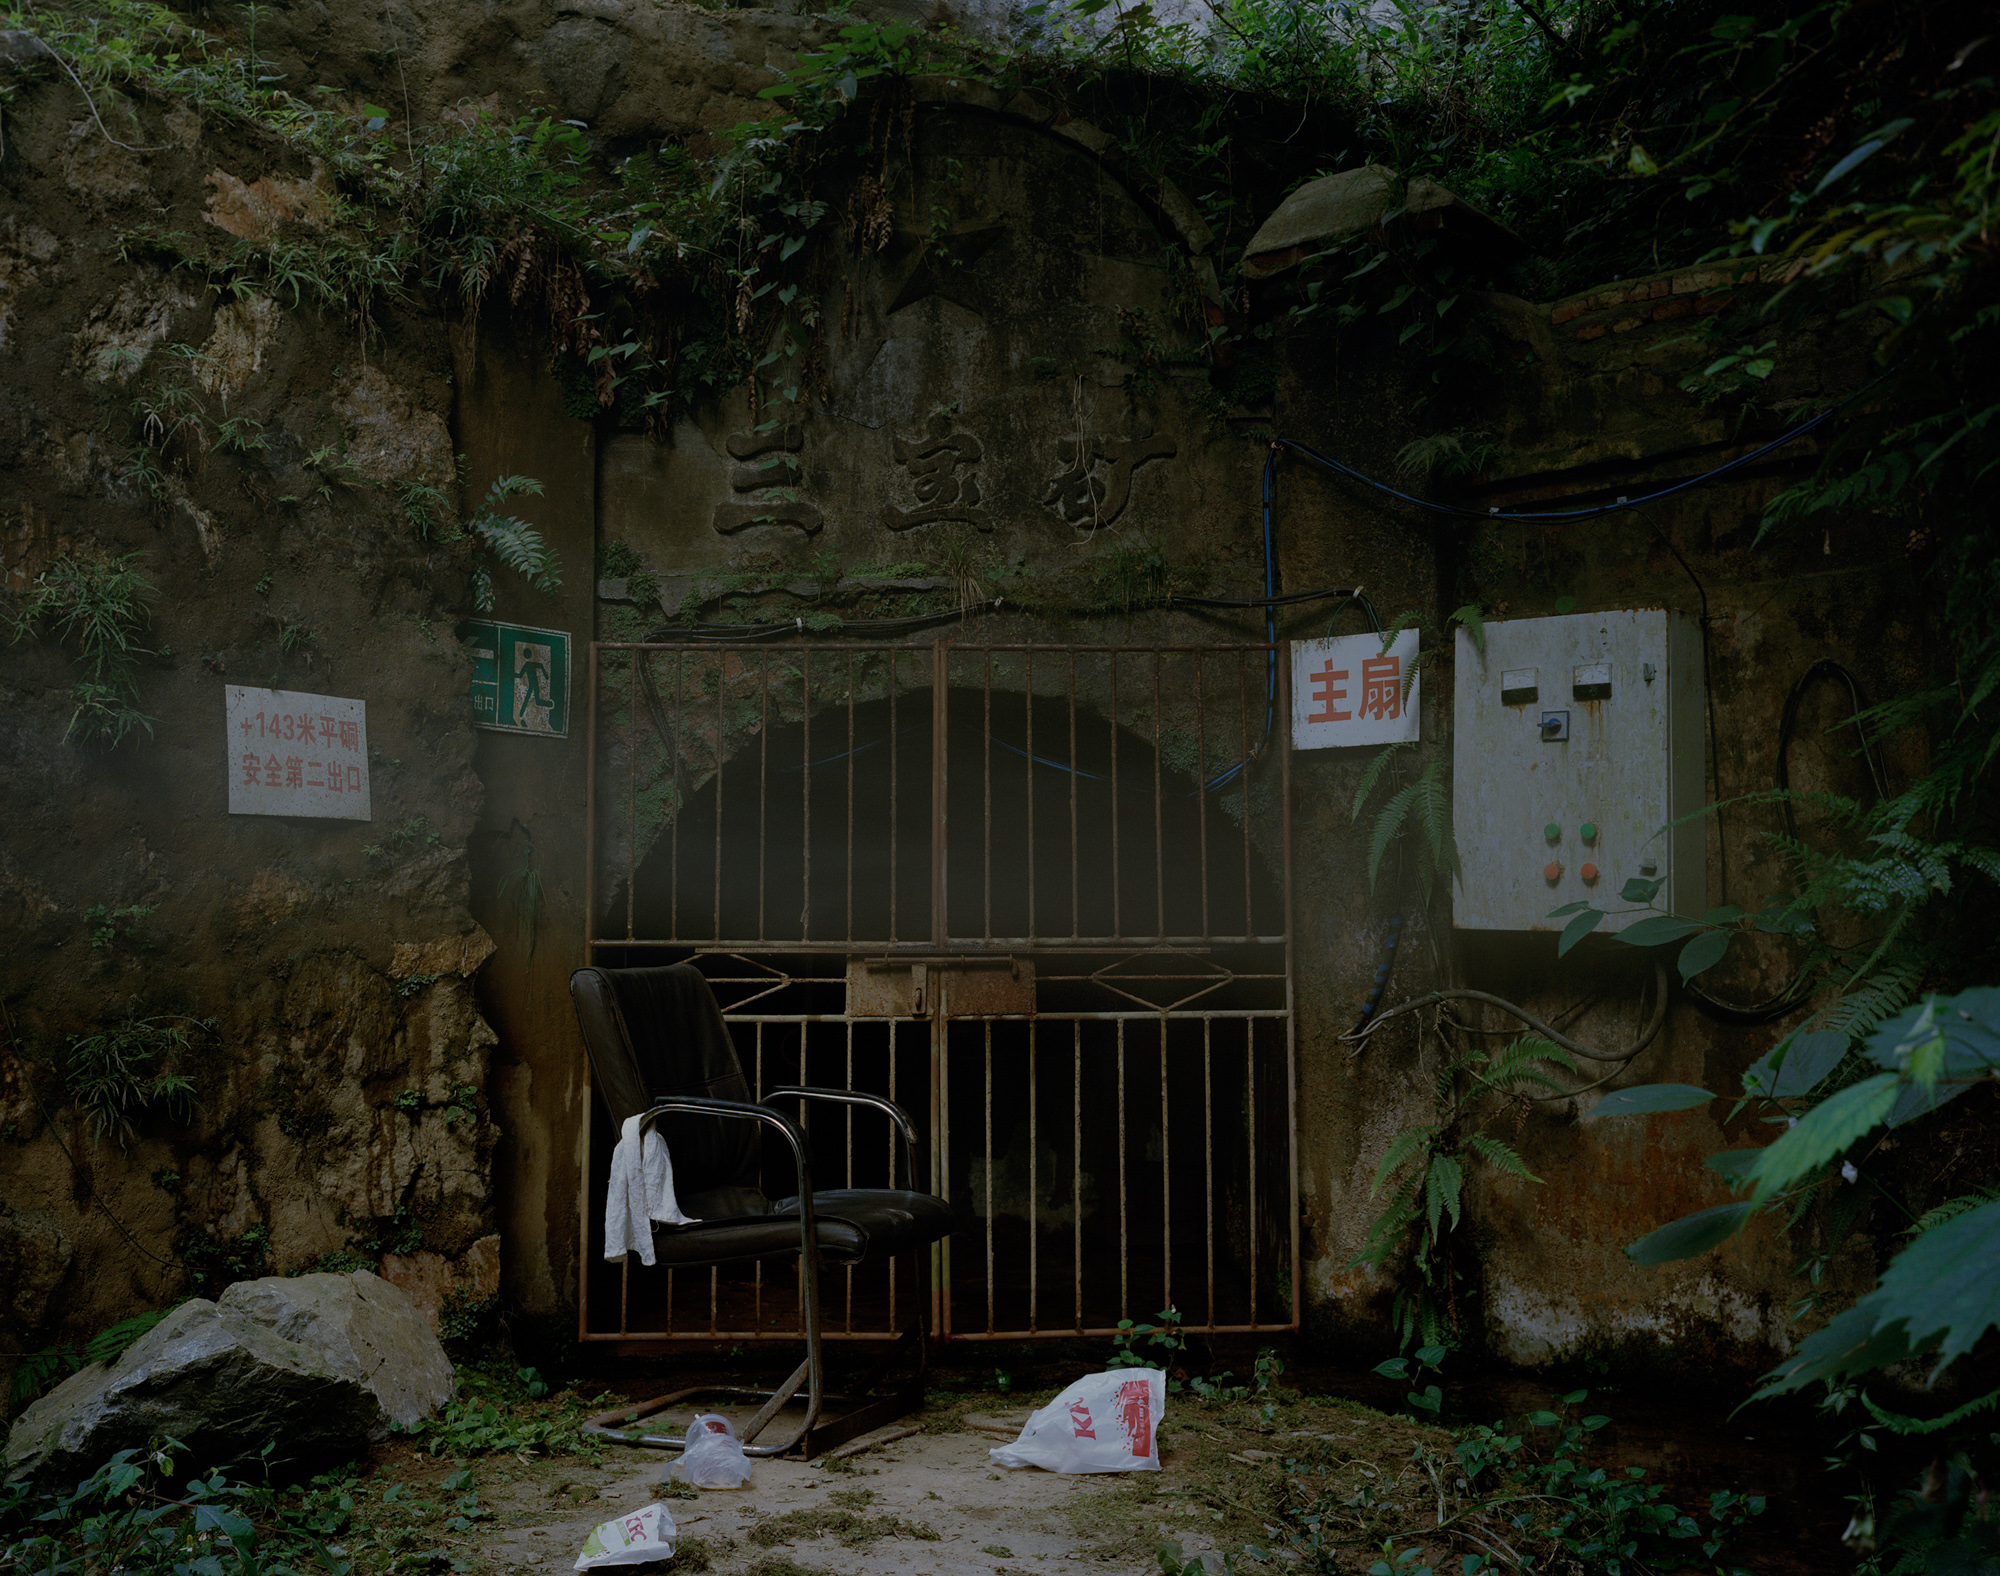 """An entrance to the Sanbao Kaolin Mine in Jingdezhen. After more than 1,700 years of exploitation, there are less than one million tons of kaolin reserves left, only enough for another 10 years of mining. In 2013, China's government designated Jingdezhen as """"declining."""""""